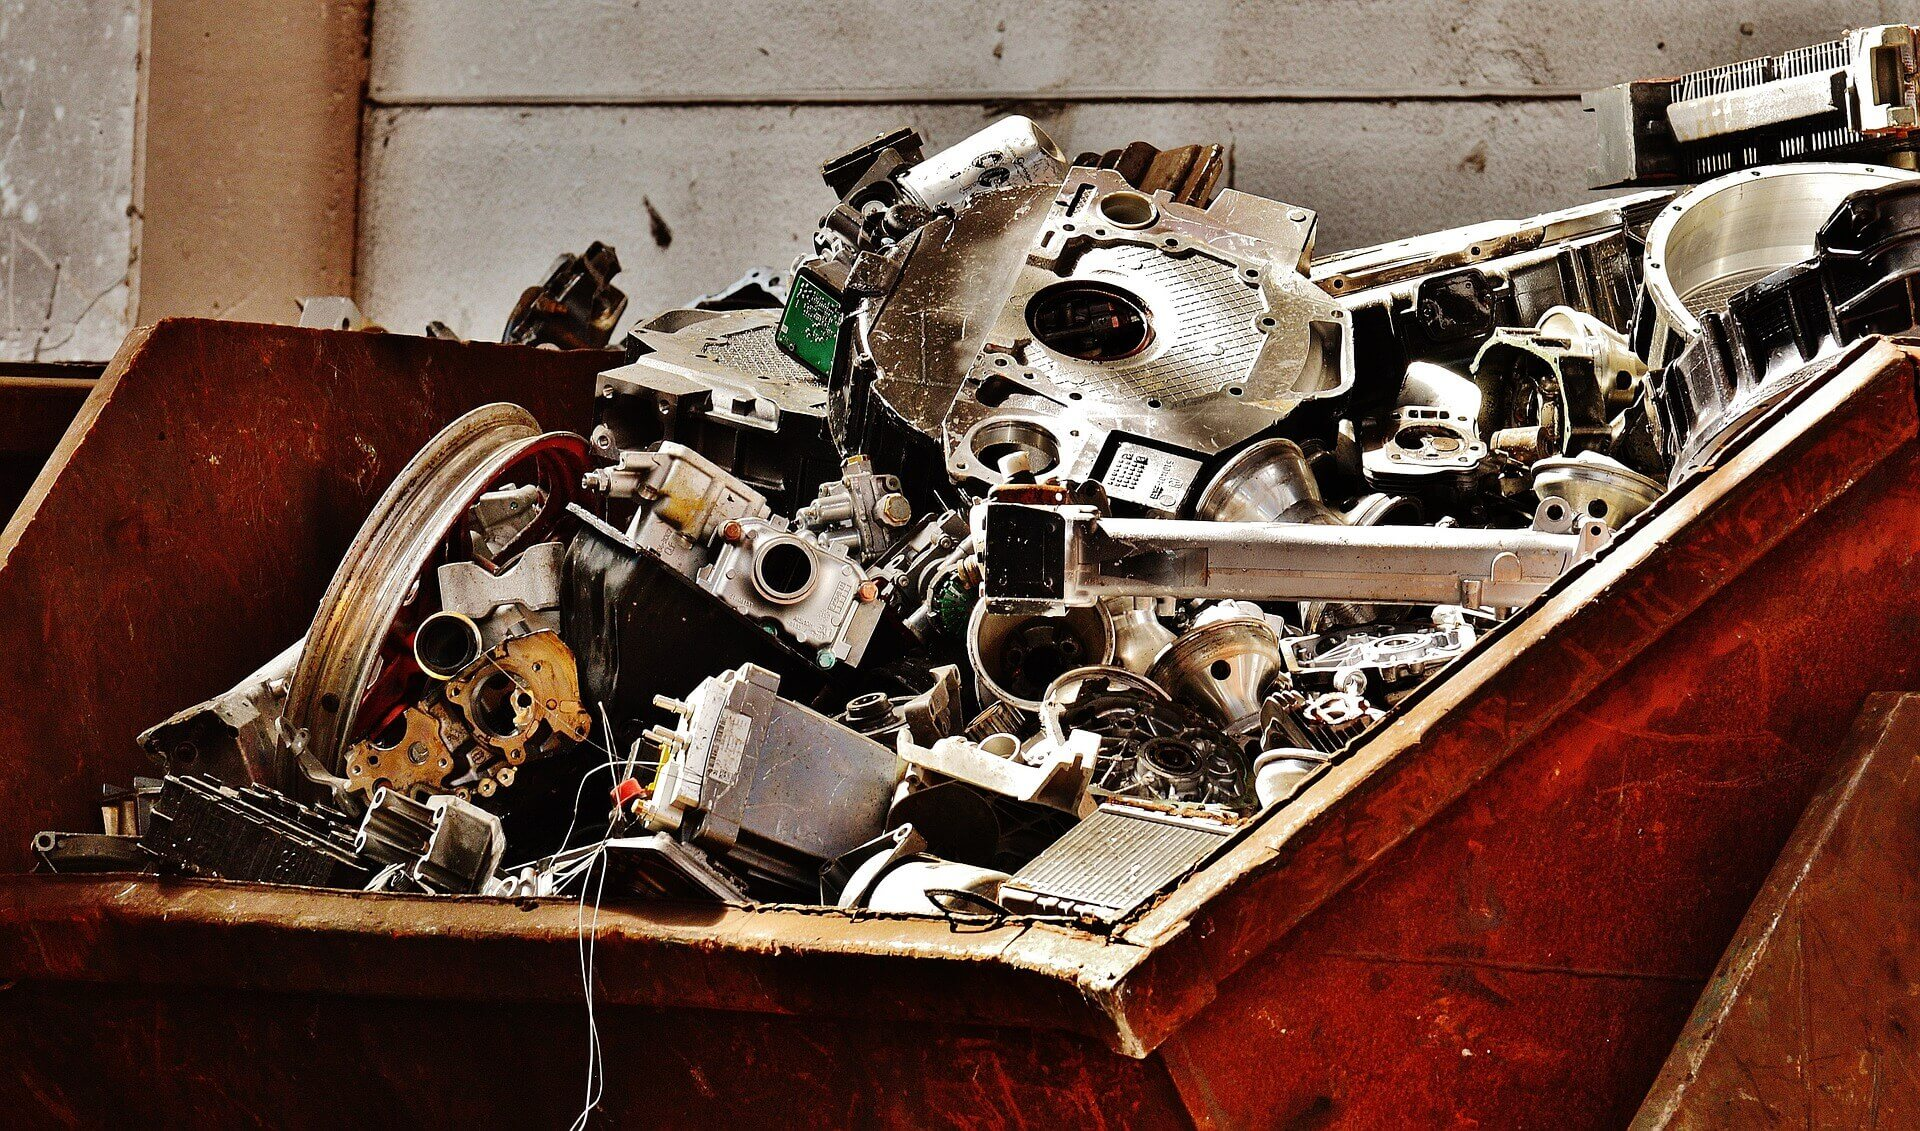 HOW MUCH IS SCRAP METAL WORTH?